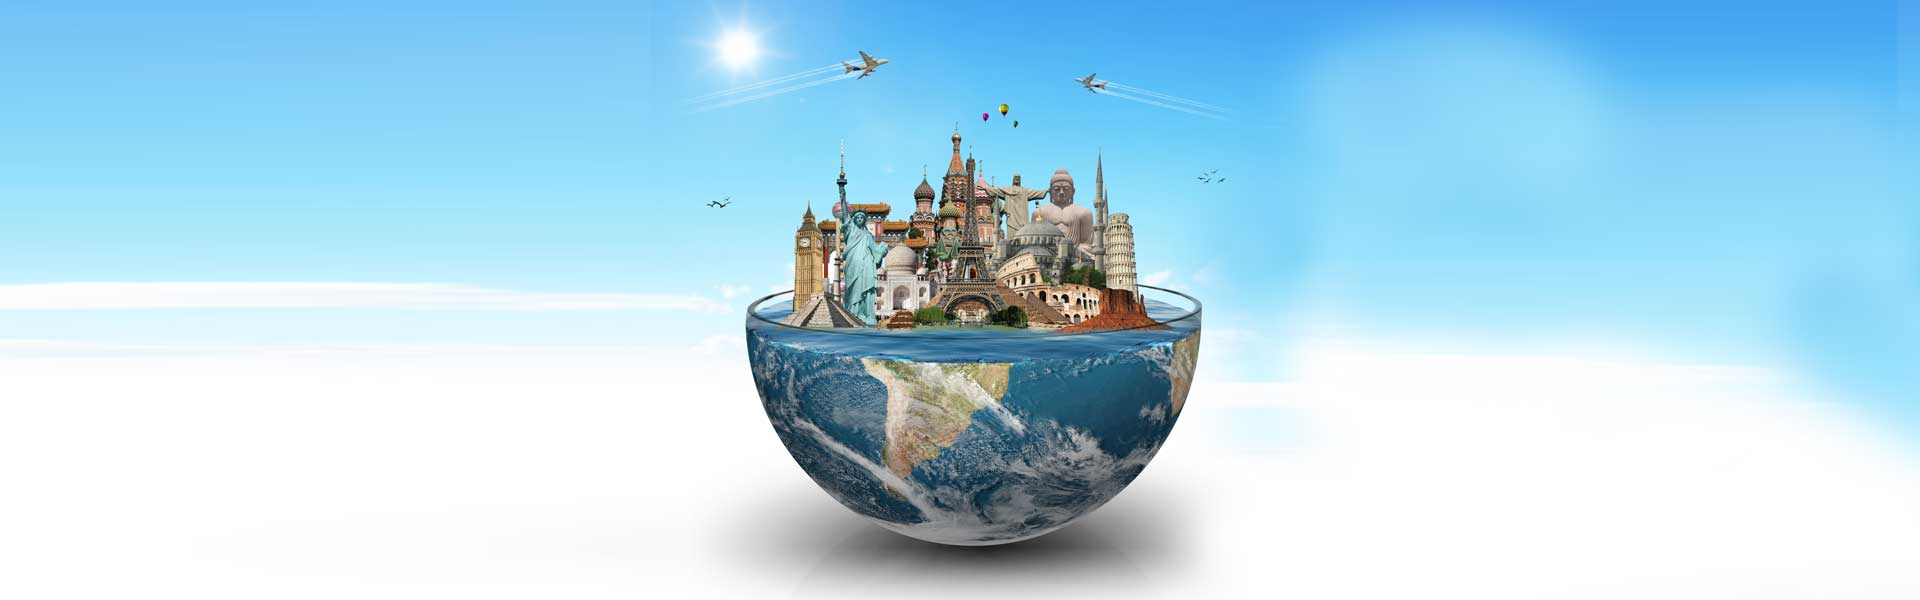 agenzia-viaggi-online-web-marketing-dreamsland-hotel-in-italia